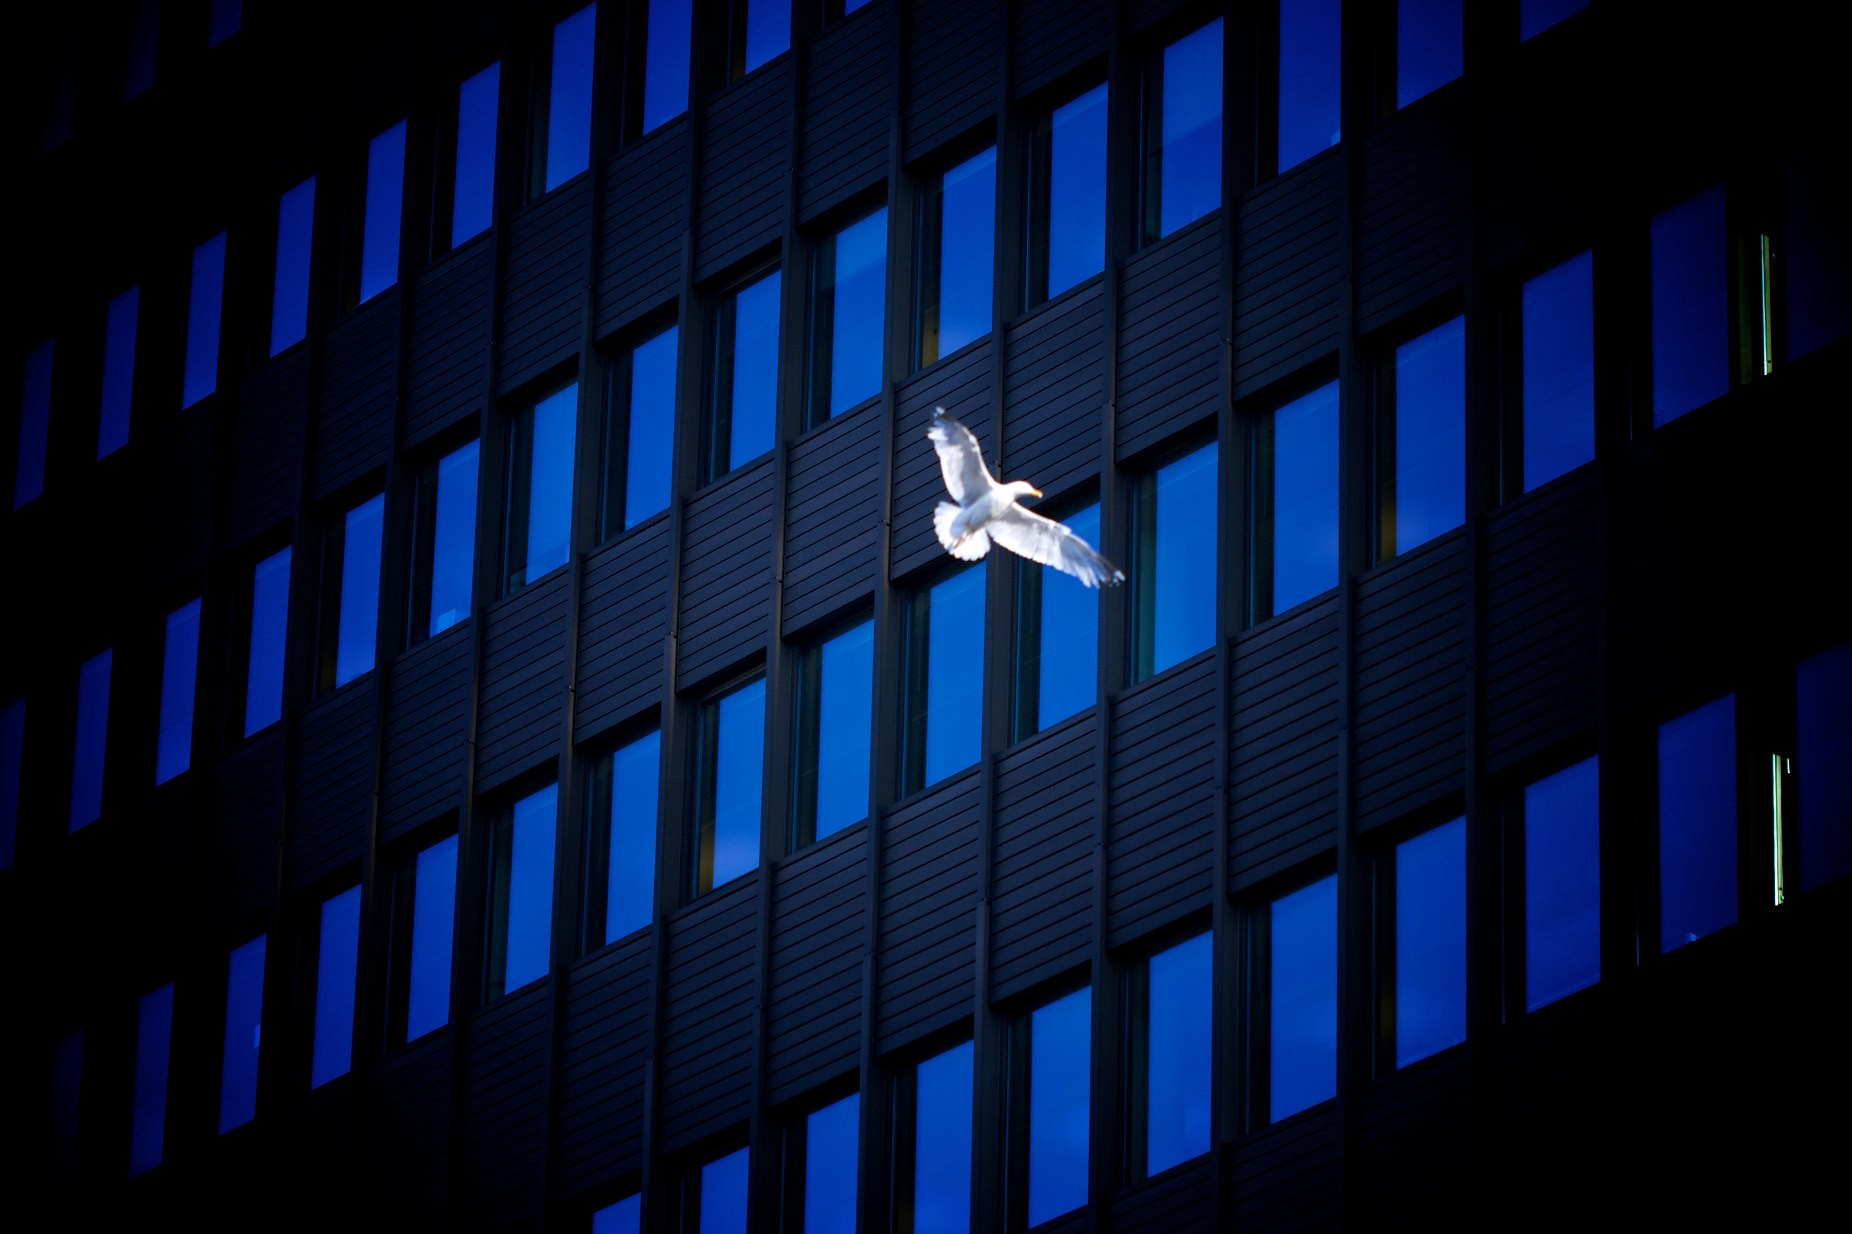 A photo of a dove flying across a building with blue-reflected windows.